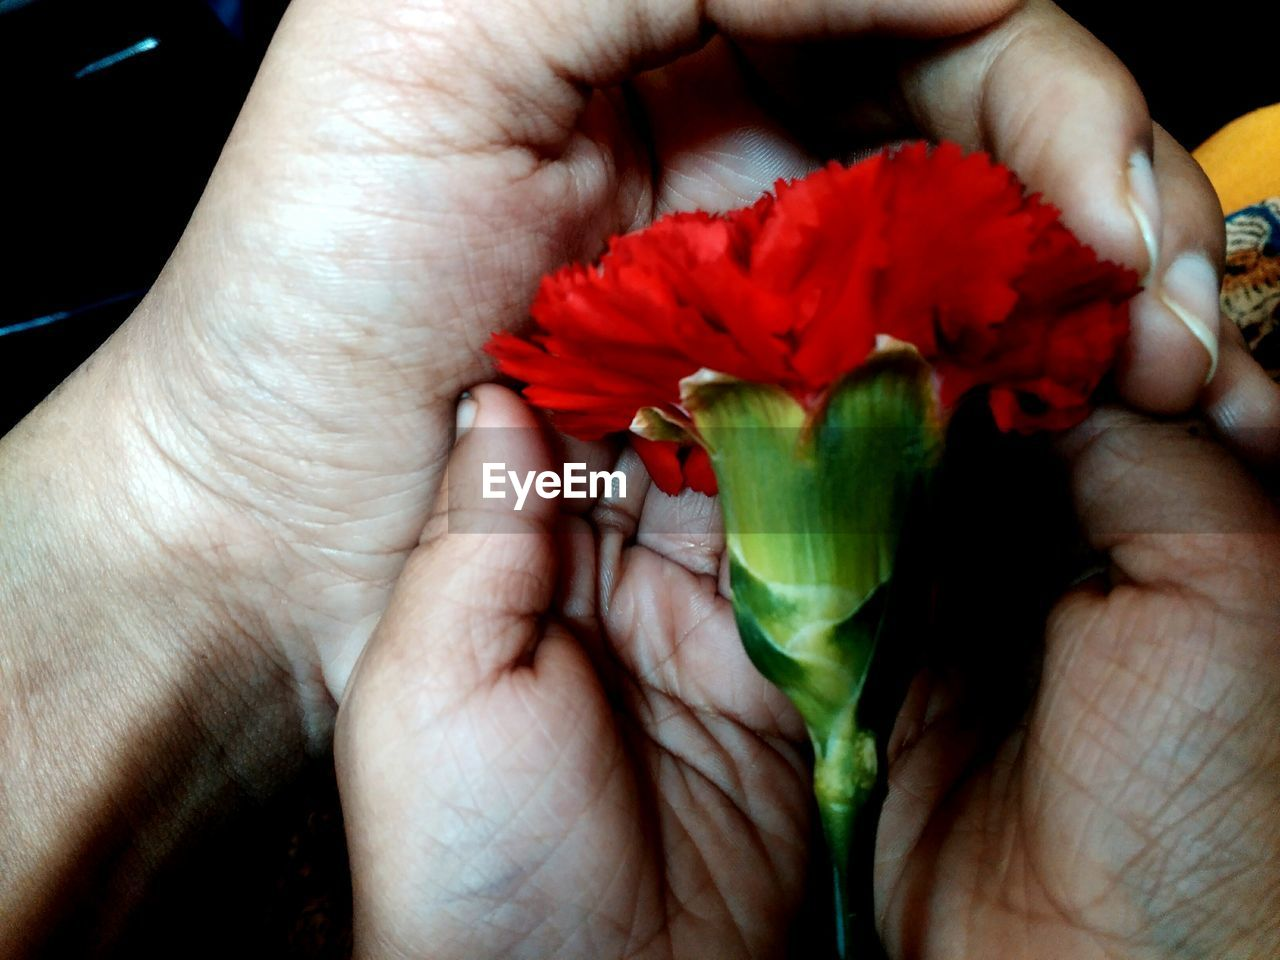 flower, human hand, petal, human body part, close-up, fragility, flower head, beauty in nature, holding, rose - flower, one person, freshness, red, real people, nature, indoors, day, people